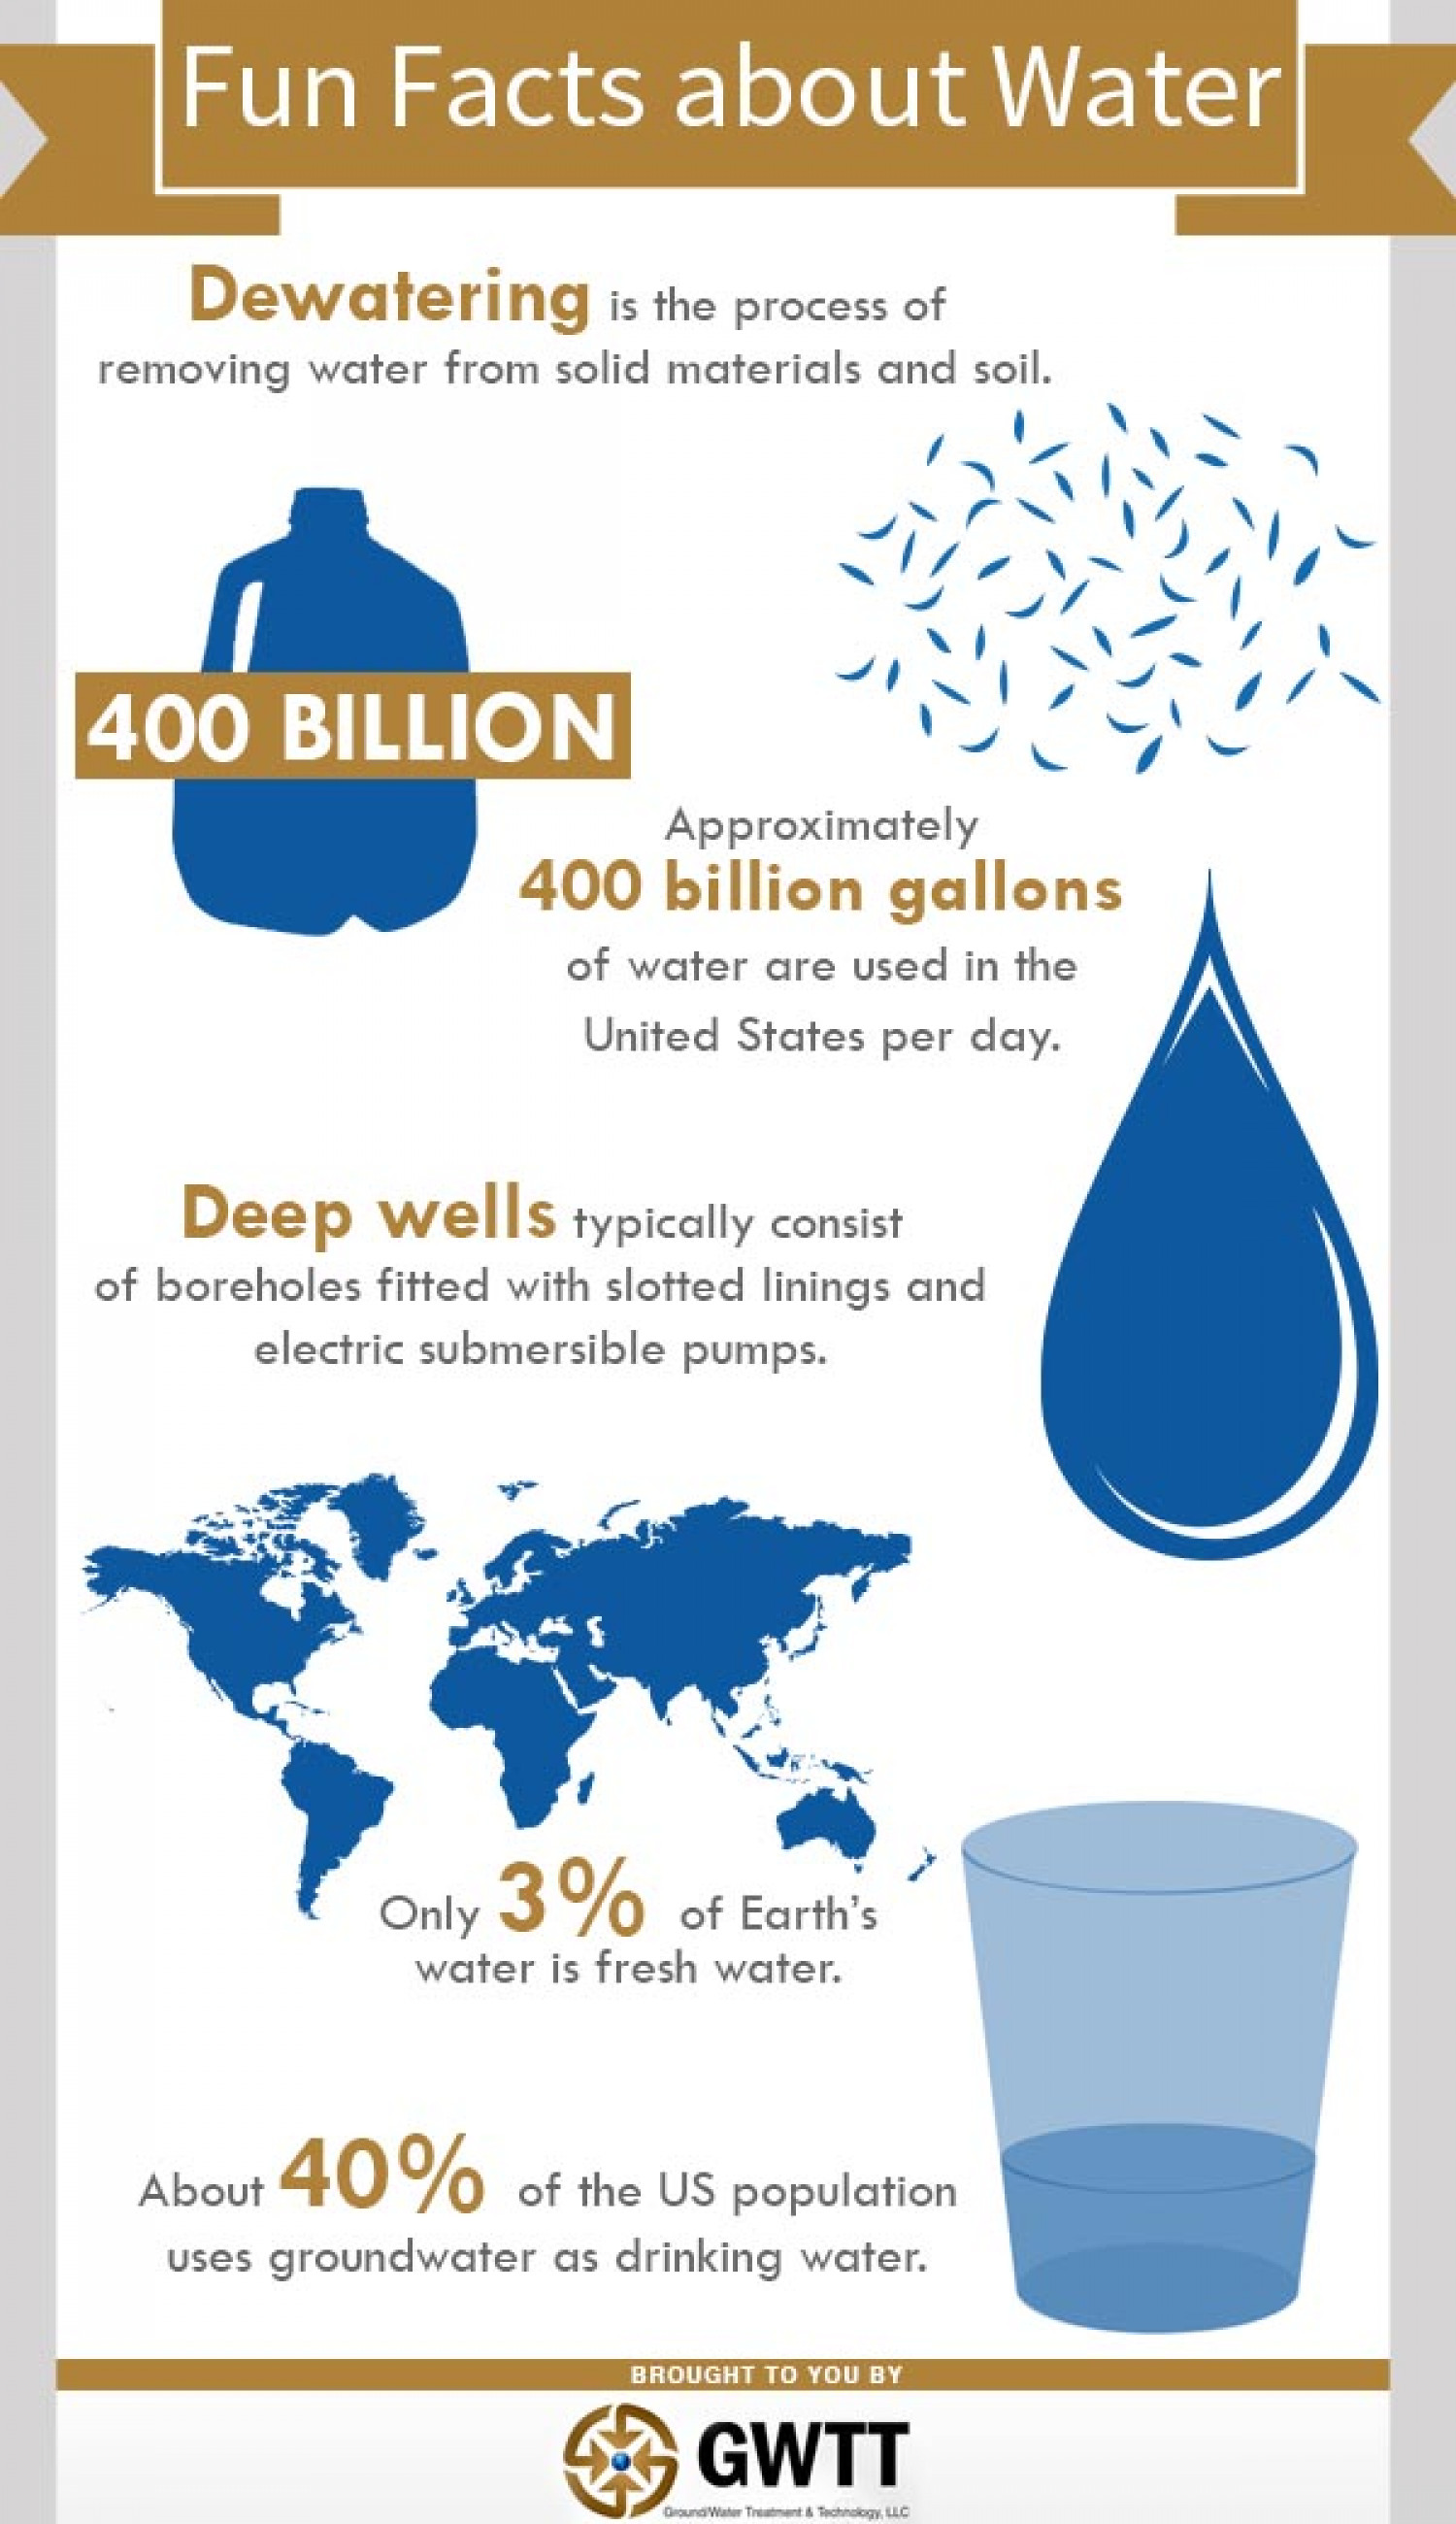 Fun Facts About Water  Visual